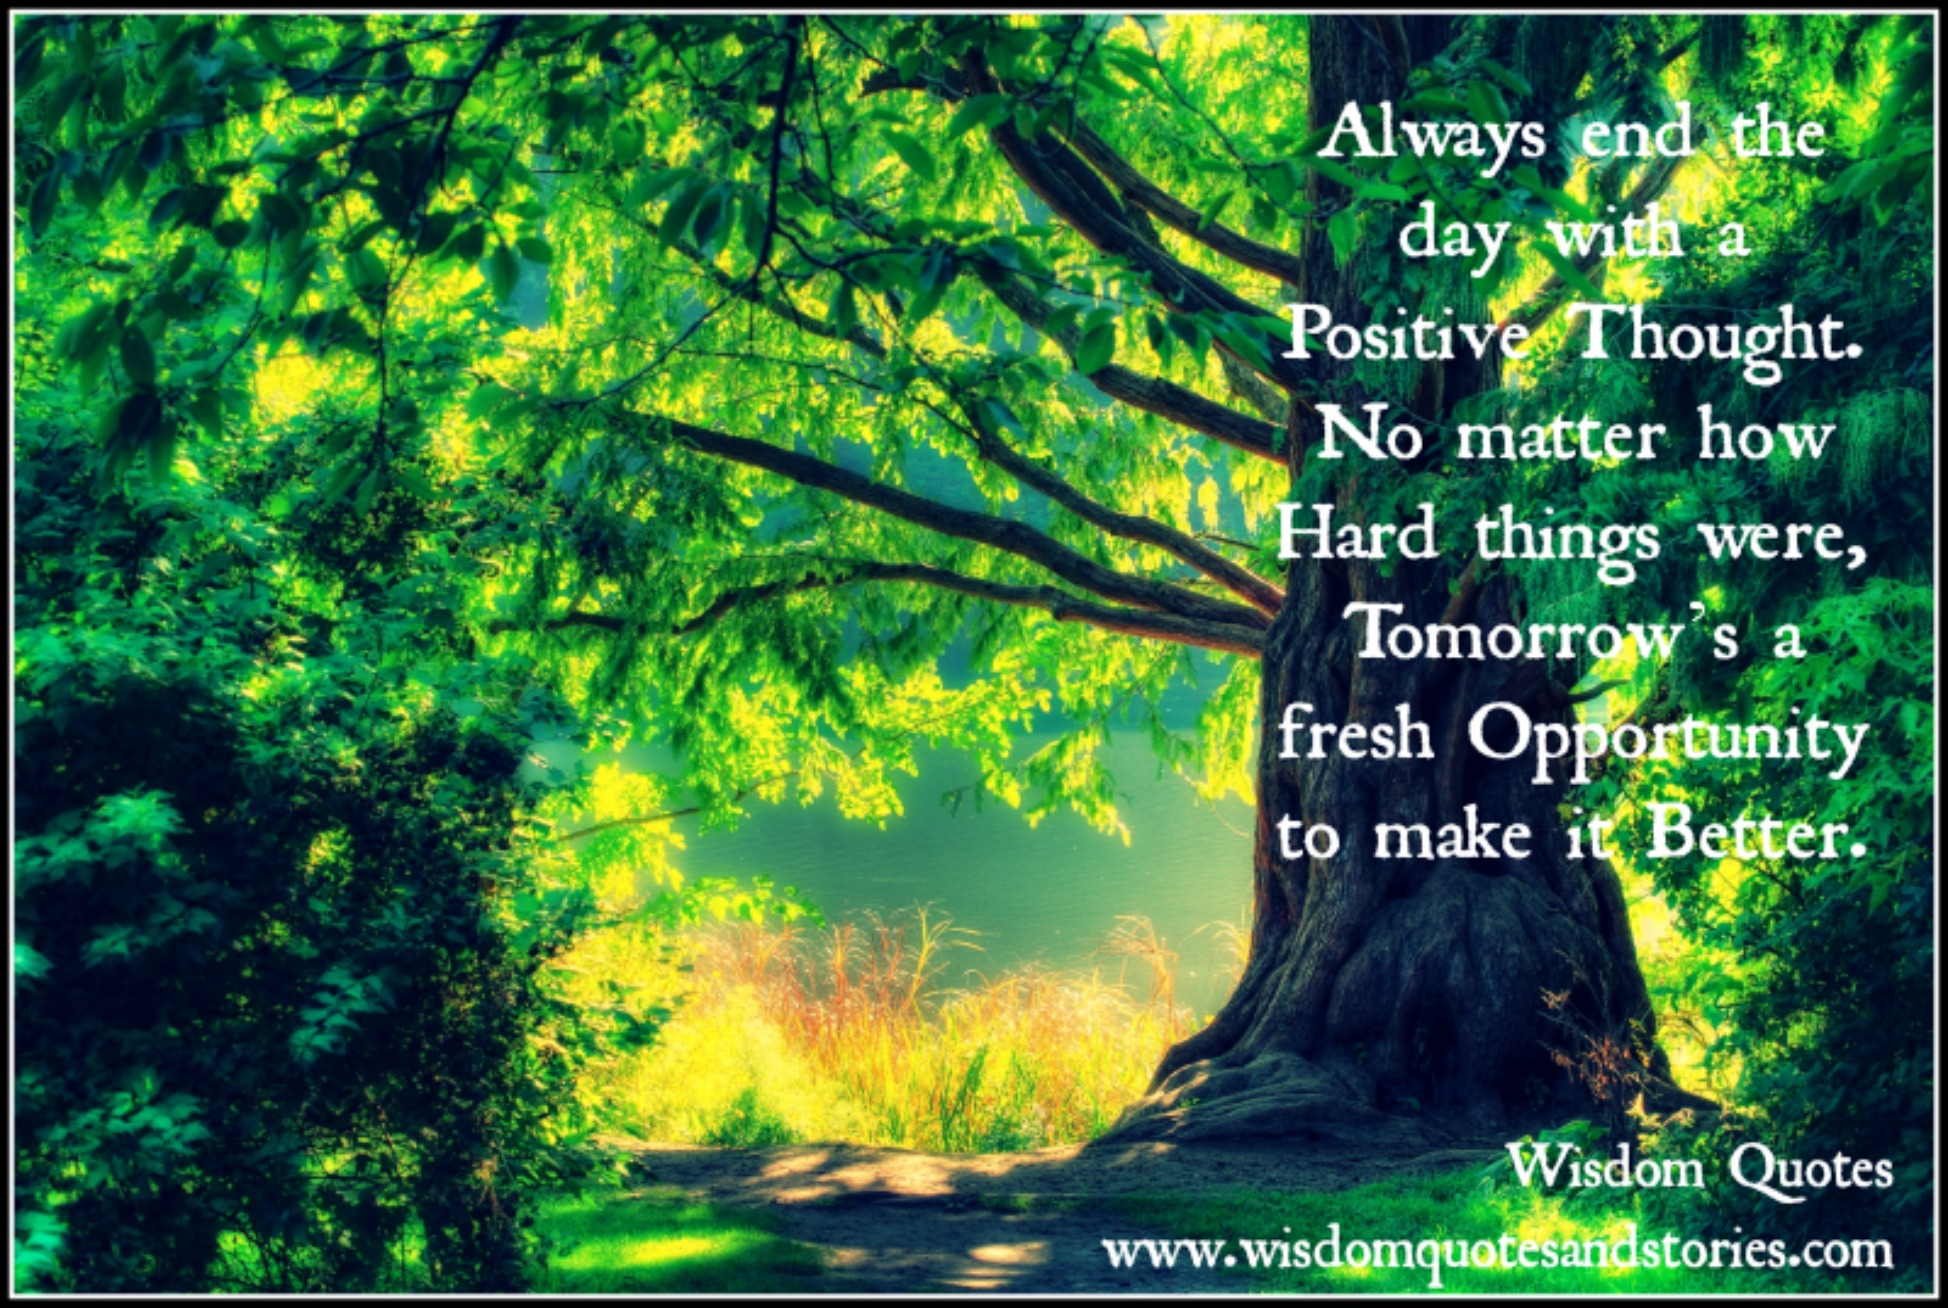 End the day with a positive thought that no matter how hard things were, tomorrow is a fresh opportunity